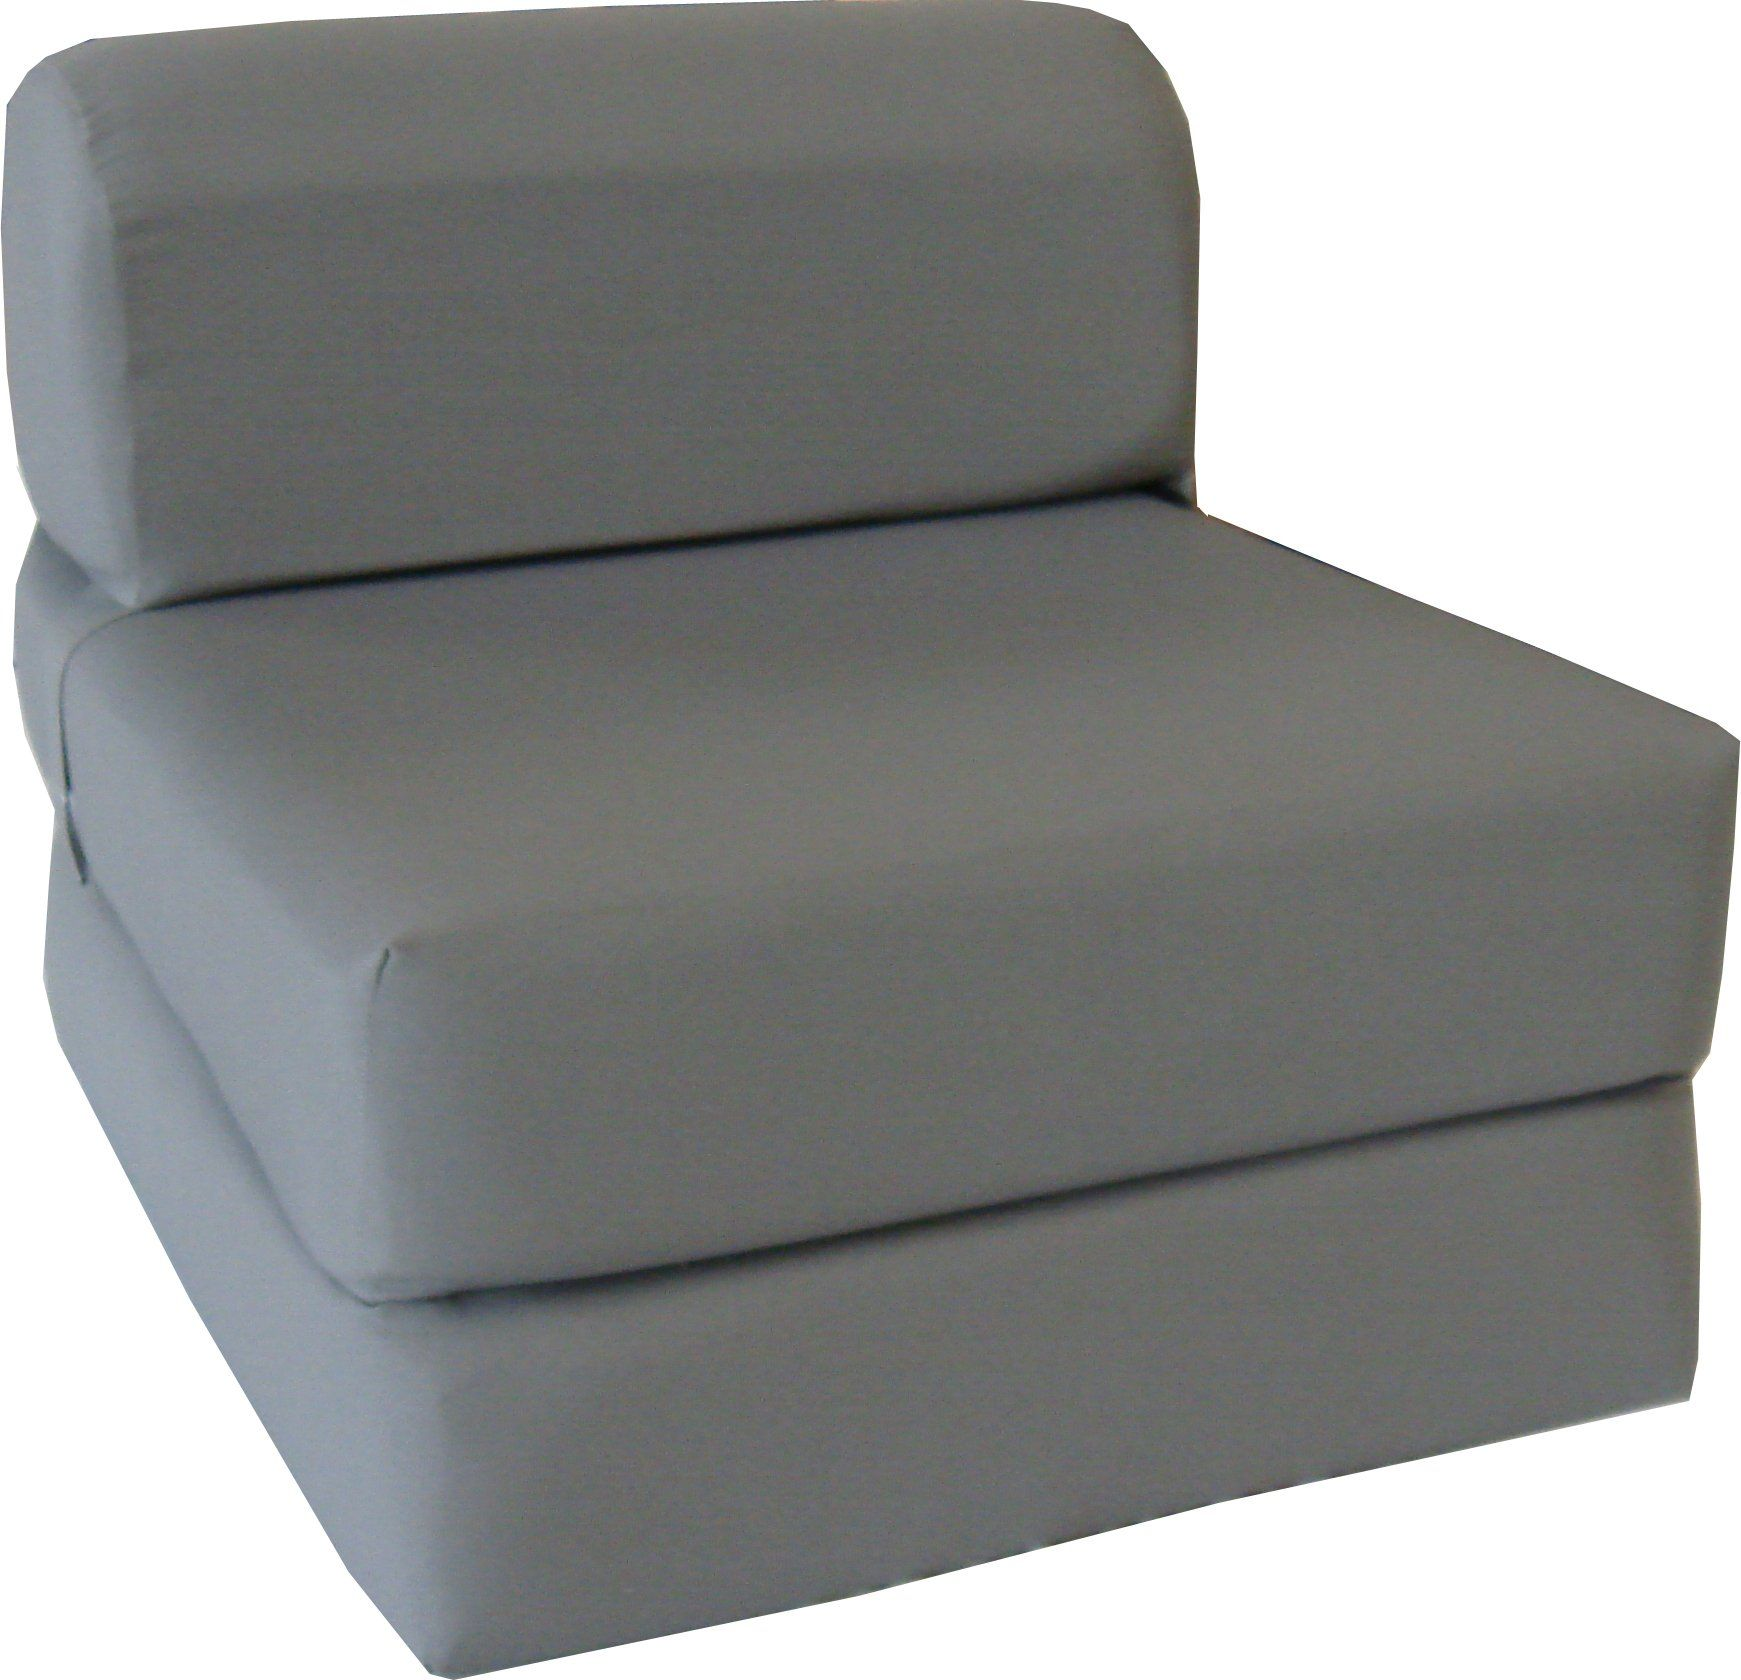 Amazon Com Gray Sleeper Chair Folding Foam Bed Sized 6 Thick X